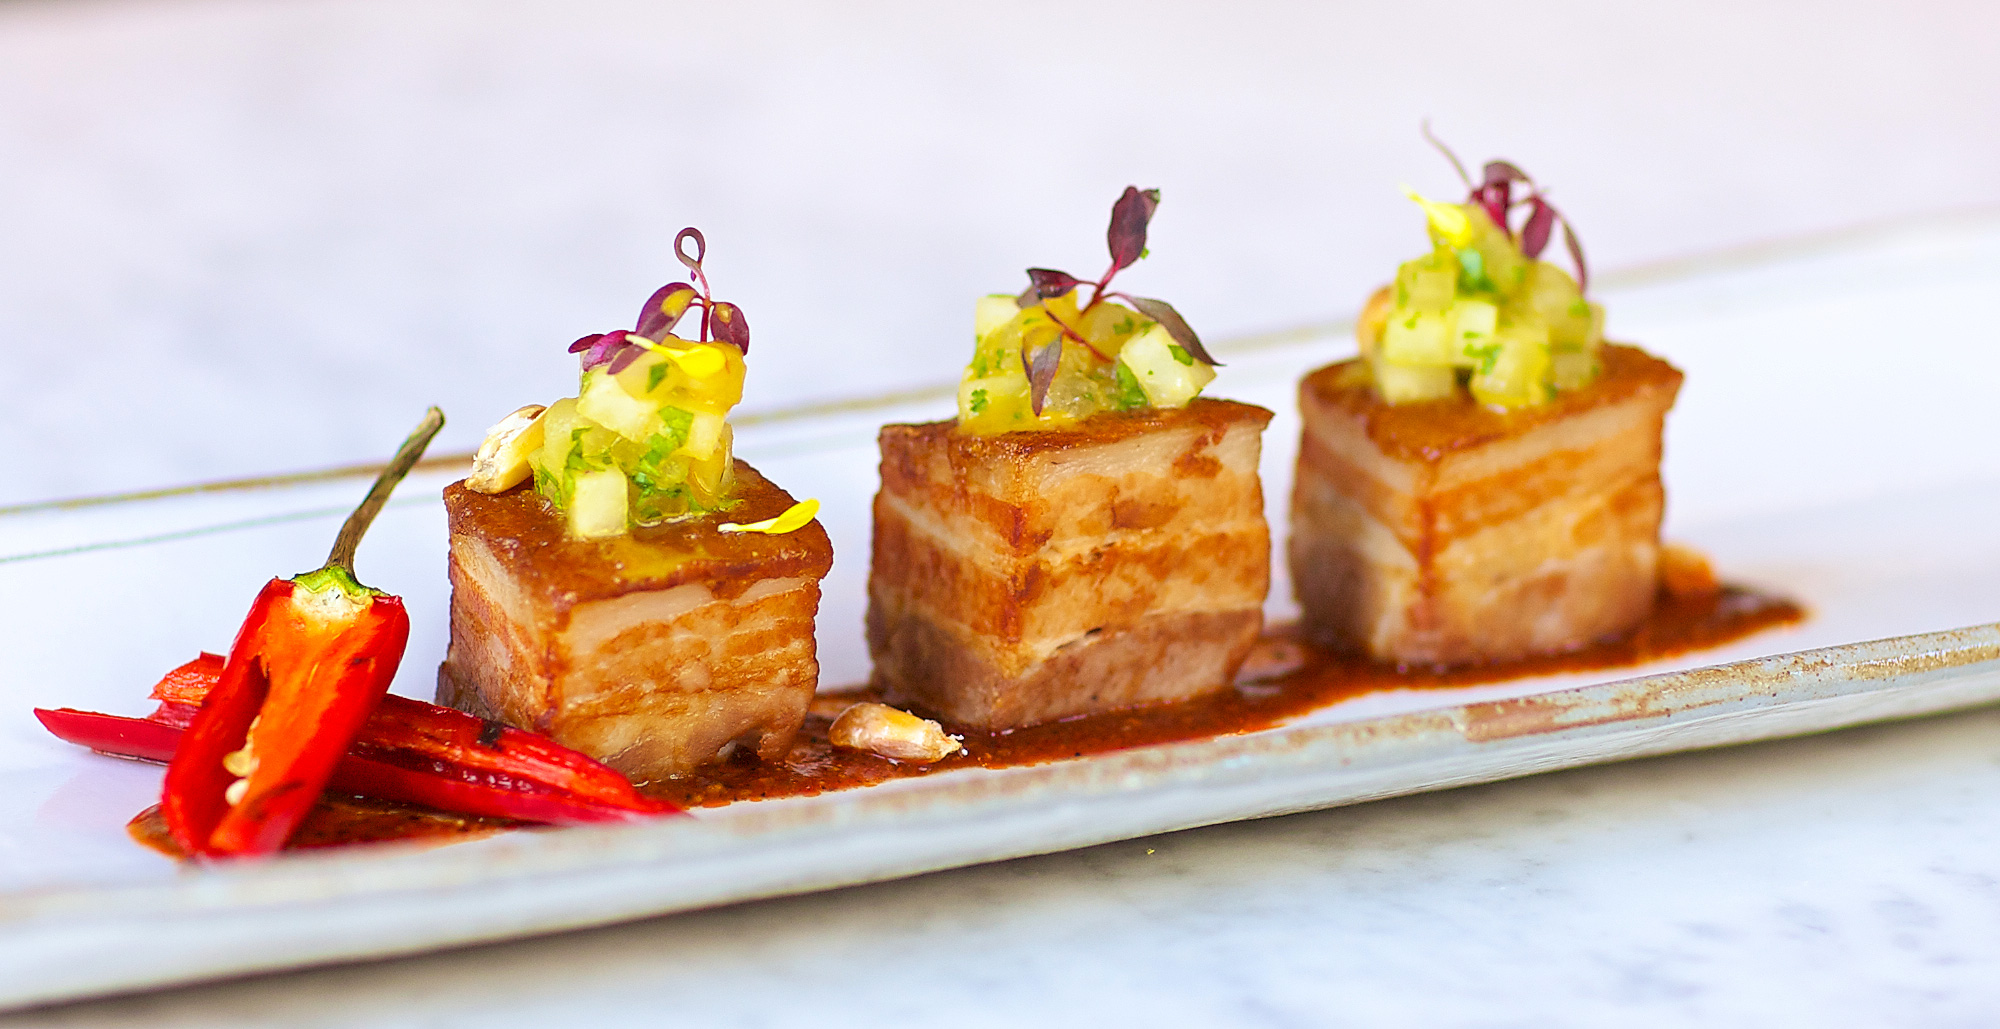 Chotto Matte - Where Peruvian Meets Japanese For A Match Made in Culinary Heaven 9